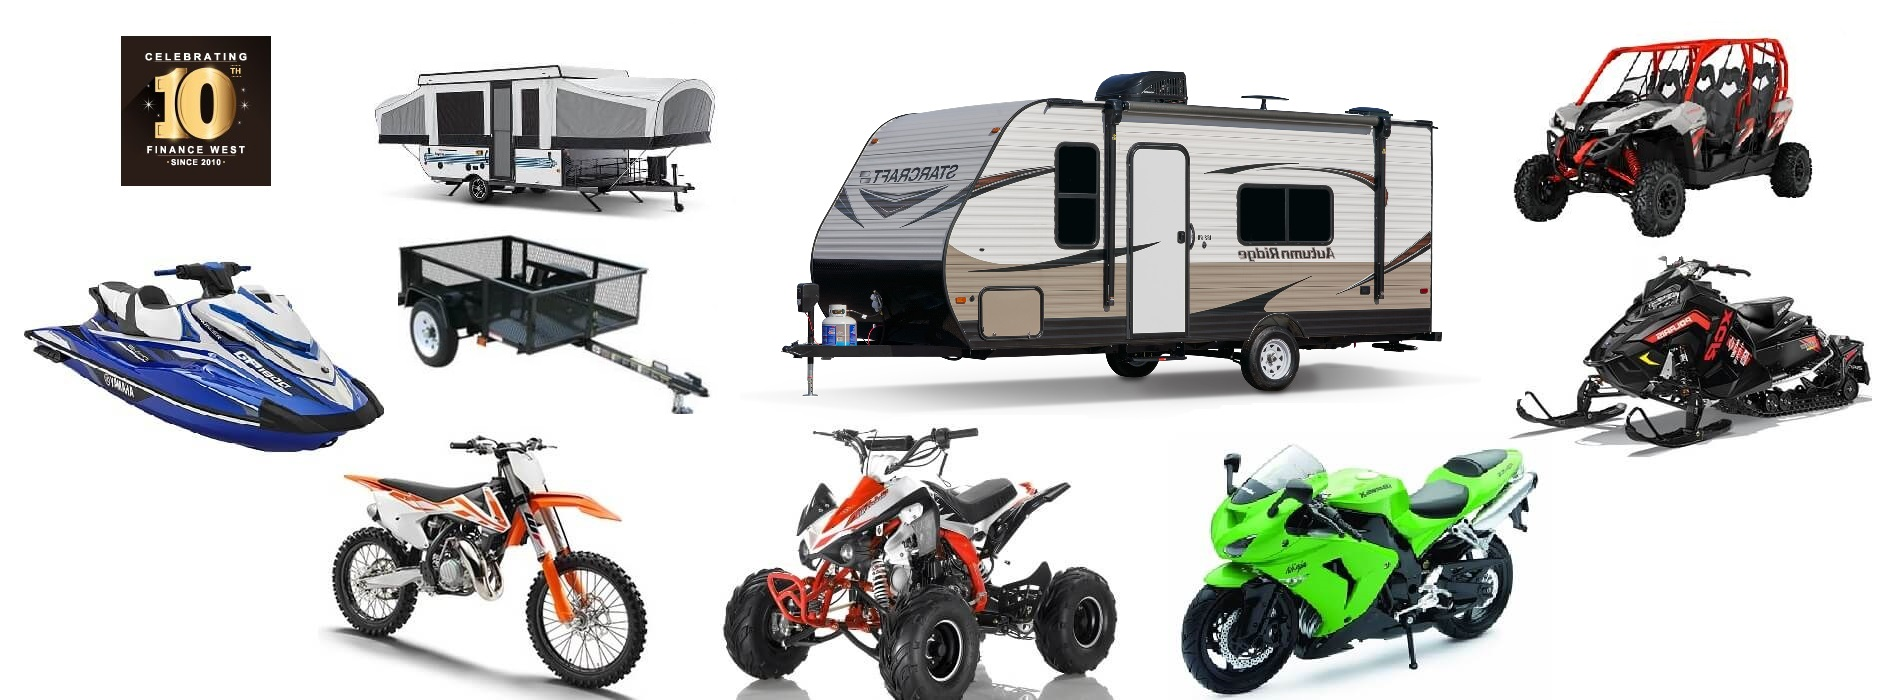 Powersports / RV Finance